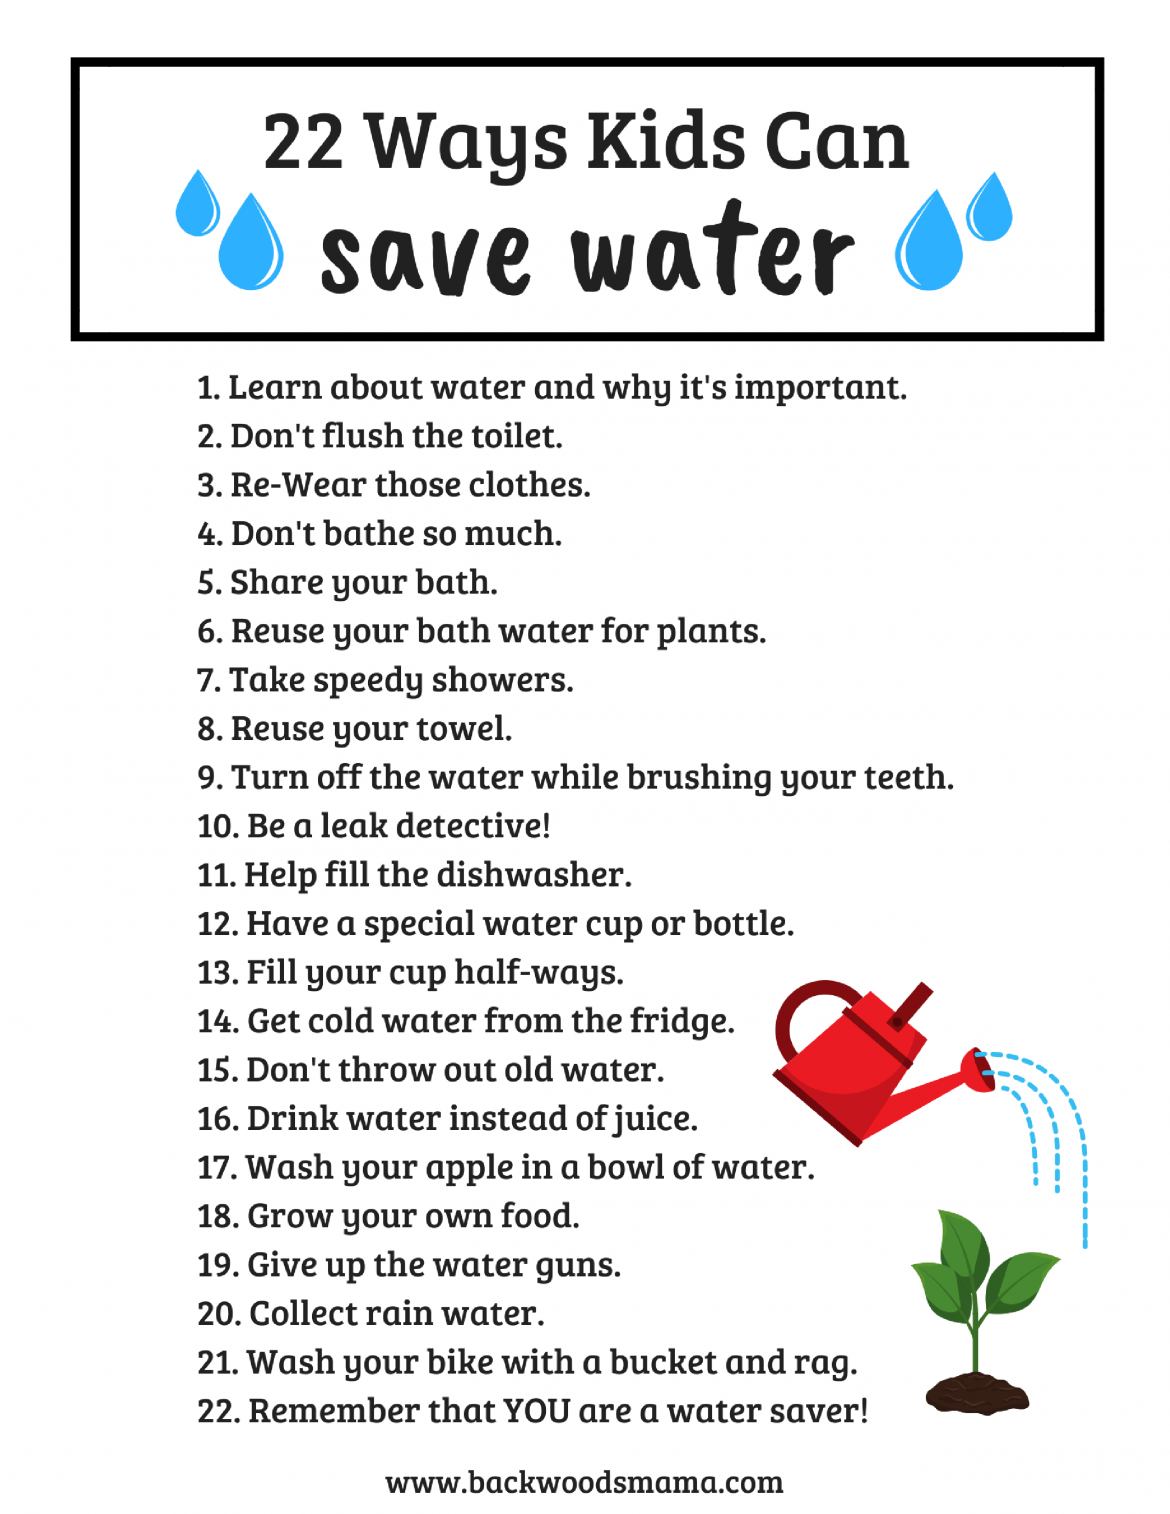 22 Ways Kids Can Save Water Backwoods Mama In